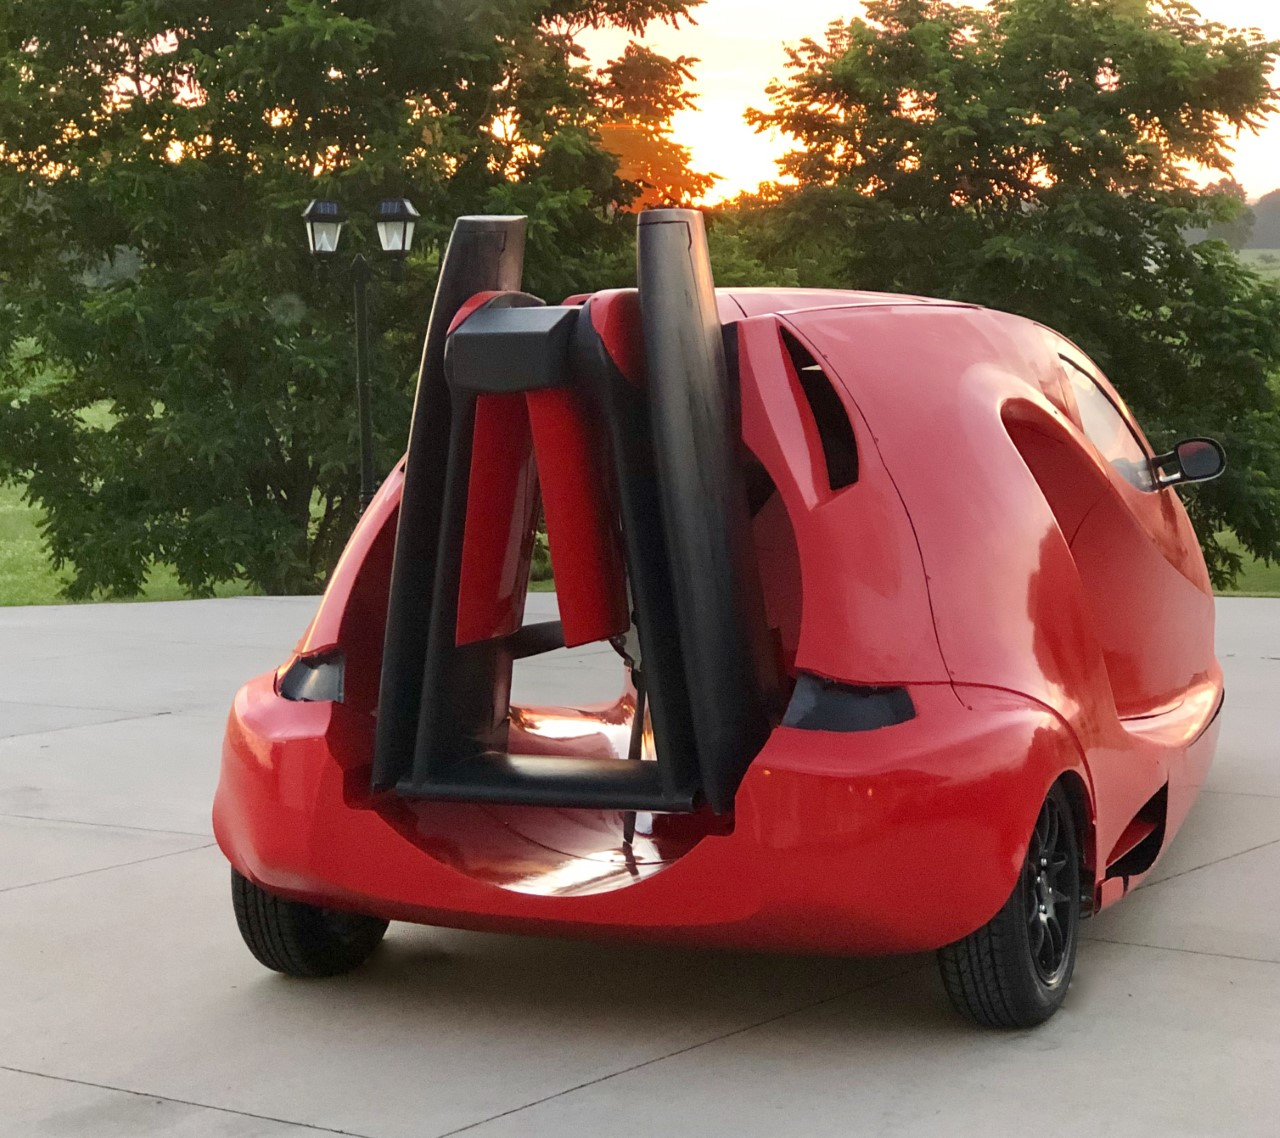 New Hampshire Paves Way for Flying Cars